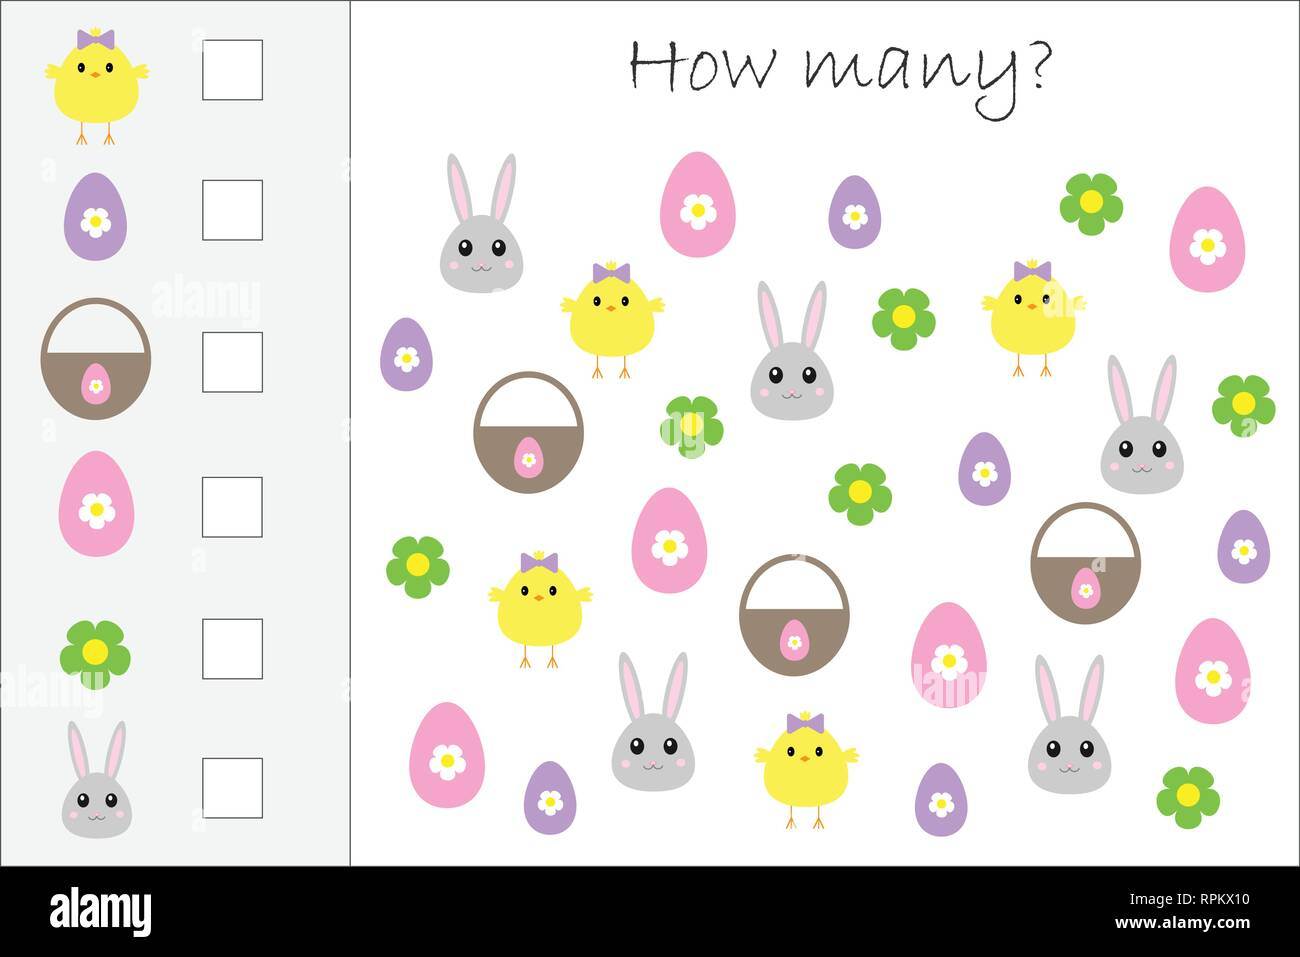 Counting Task Easter Bunny Stock Photos Amp Counting Task Easter Bunny Stock Images